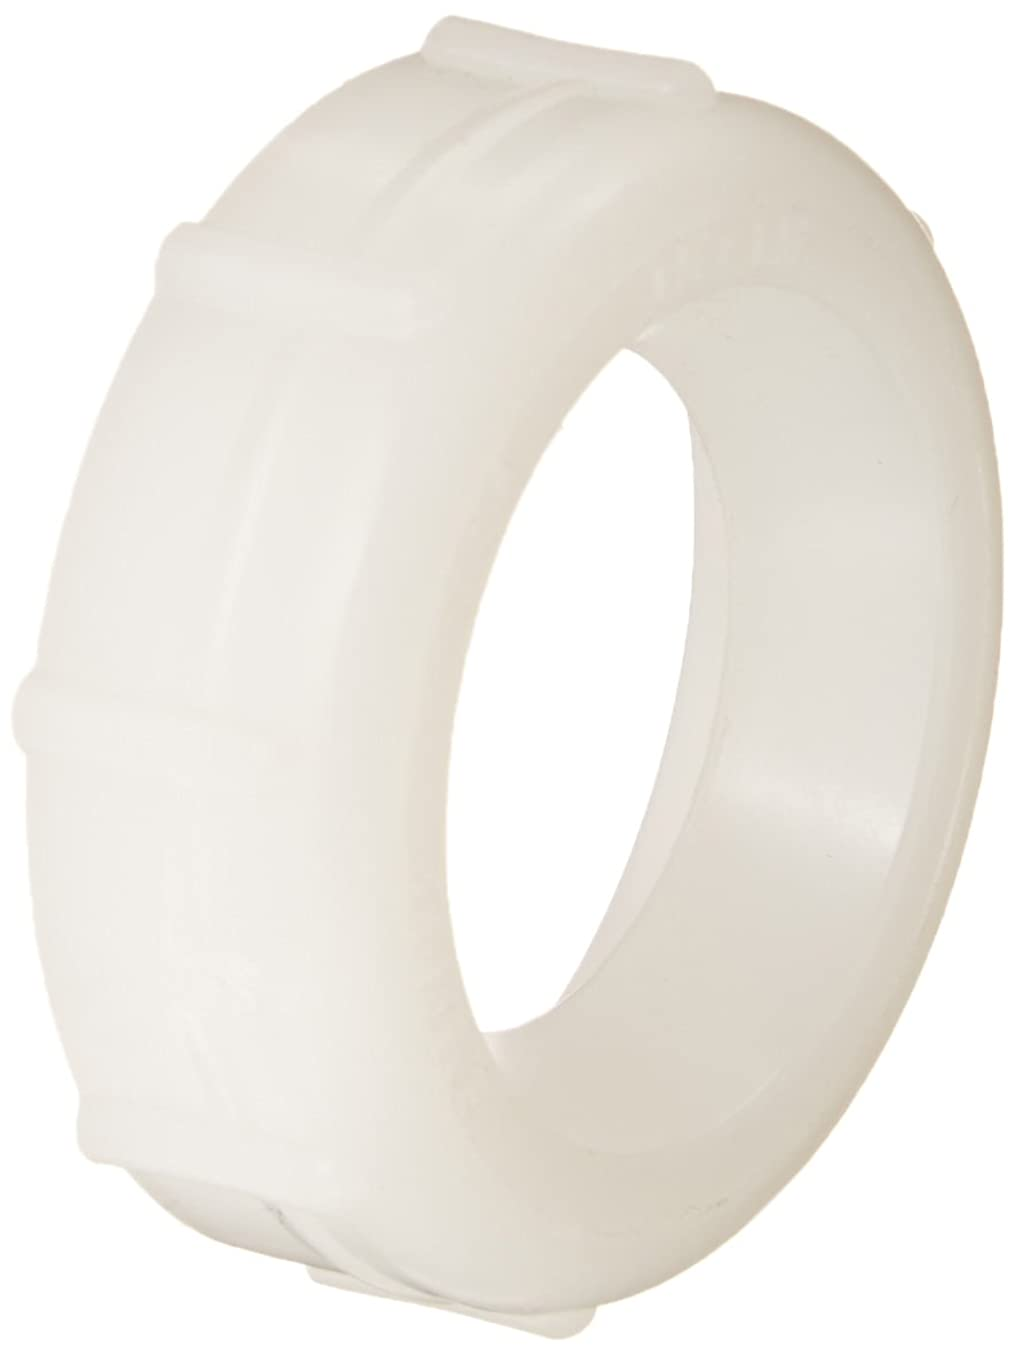 Spears P000P Series PVC DWV Pipe Fitting, Joint Nut, 1-1/4